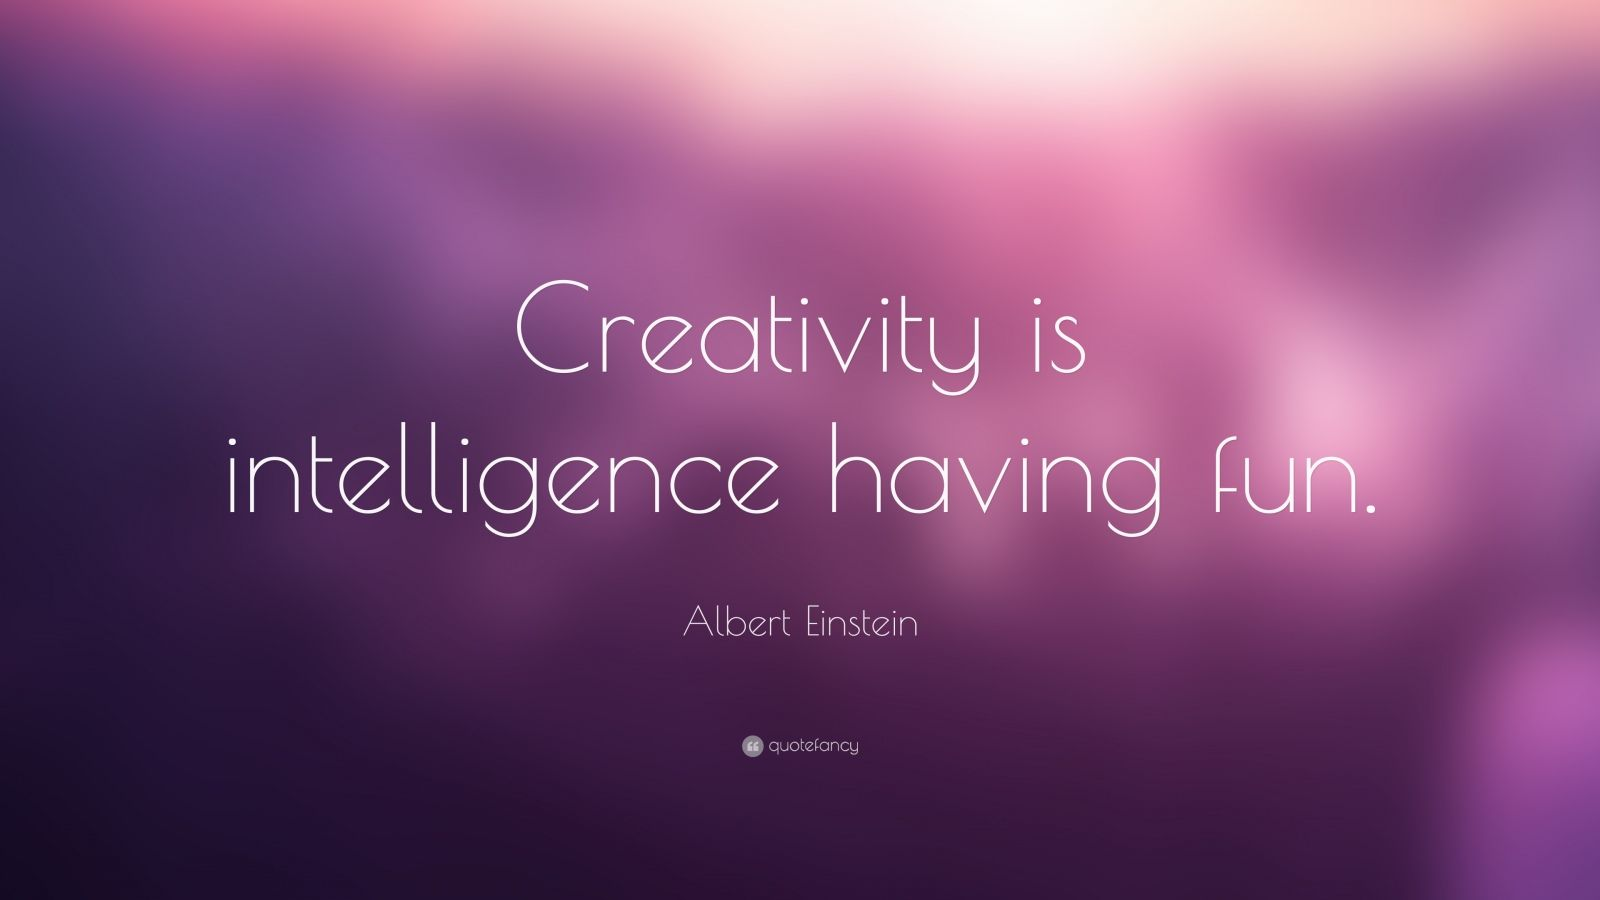 10 Albert Einstein Quote Creativity Is Intelligence Having Fun Information Creativity is intelligence having fun.